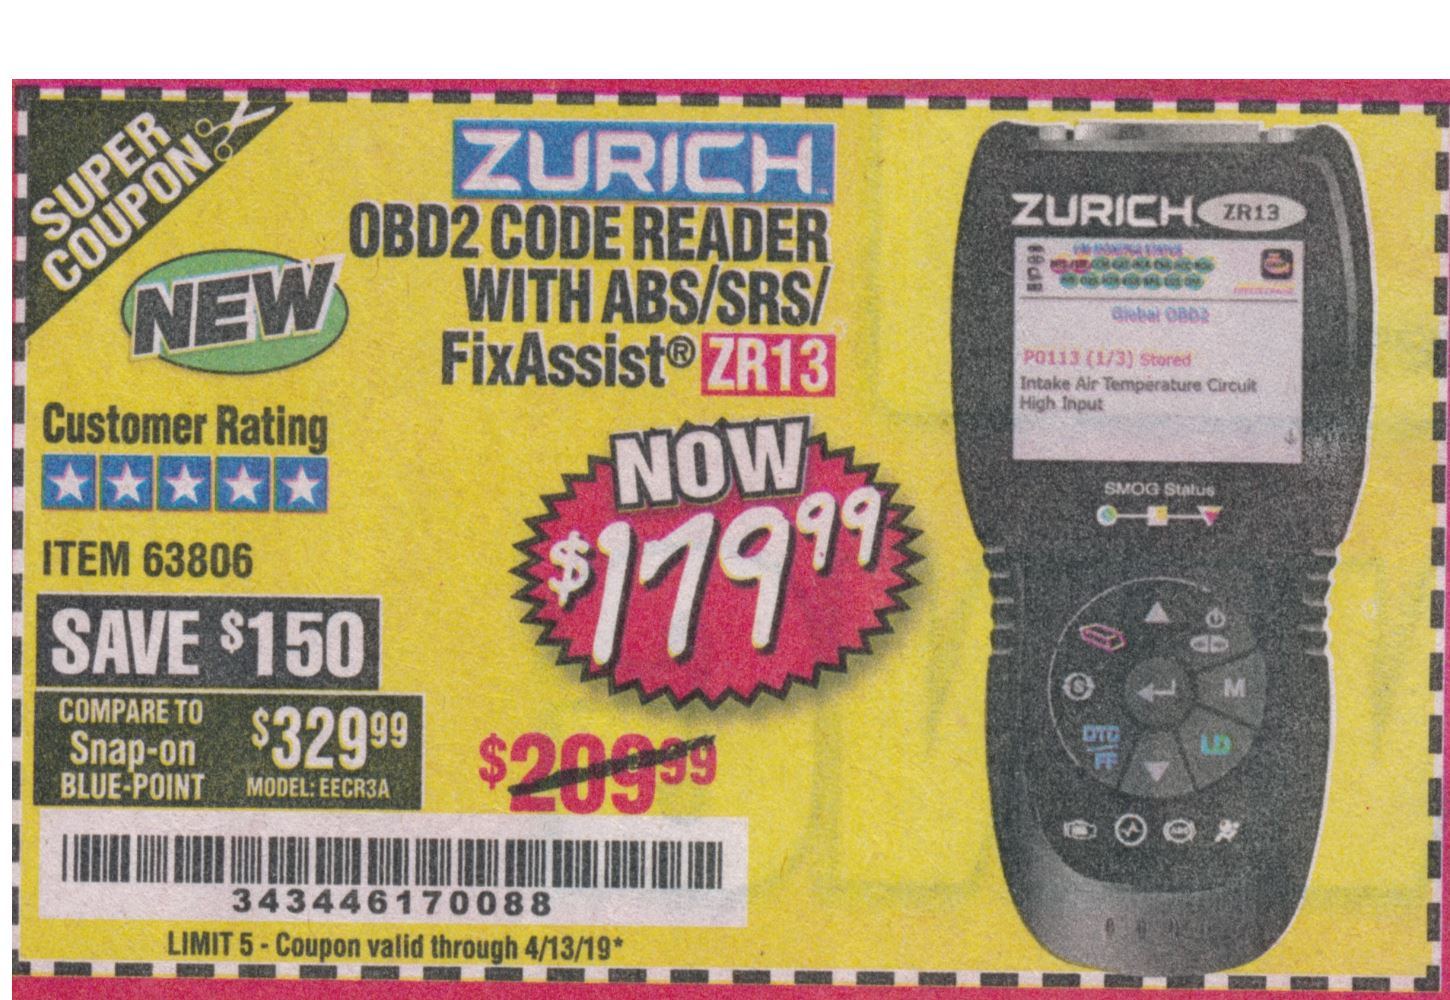 www.hfqpdb.com - ZURICH OBD2 SCANNER WITH ABS ZR13 Lot No. 63806